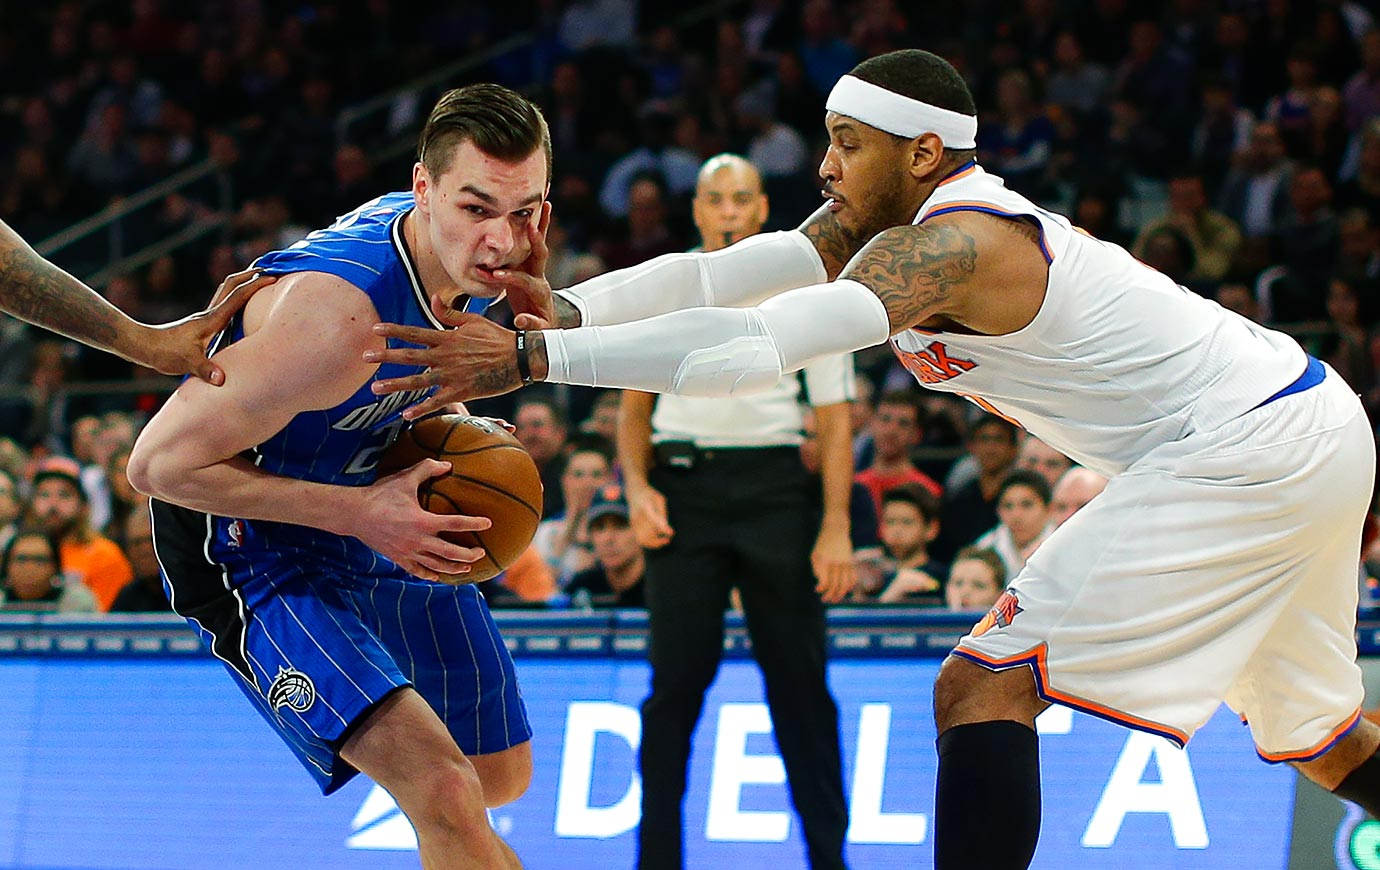 Orlando Magic guard Mario Hezonja drives past New York Knicks forward Carmelo Anthony during the second quarter of a game in New York City.